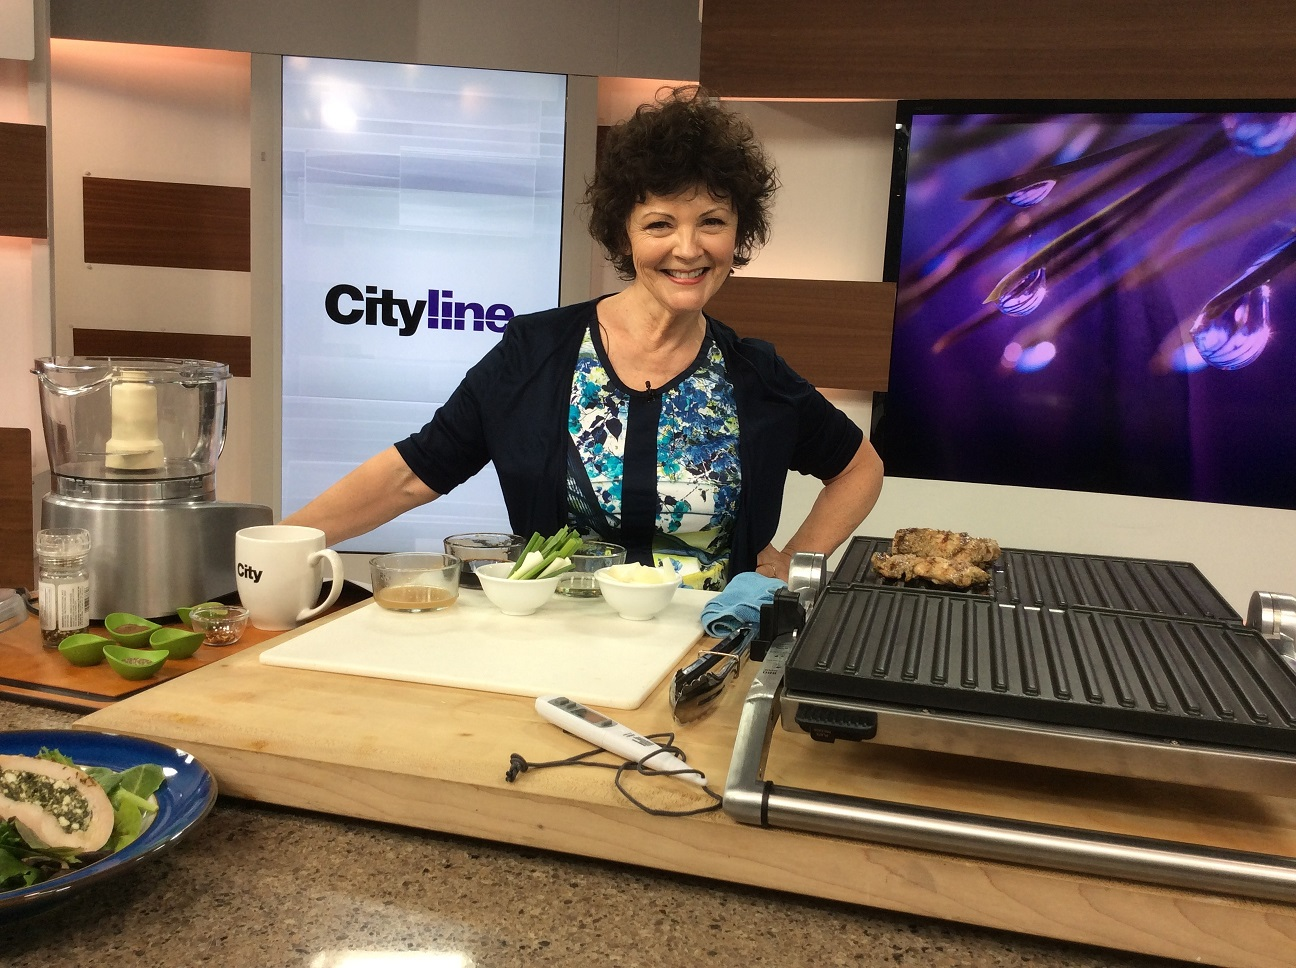 resized-me-on-cityline.jpg